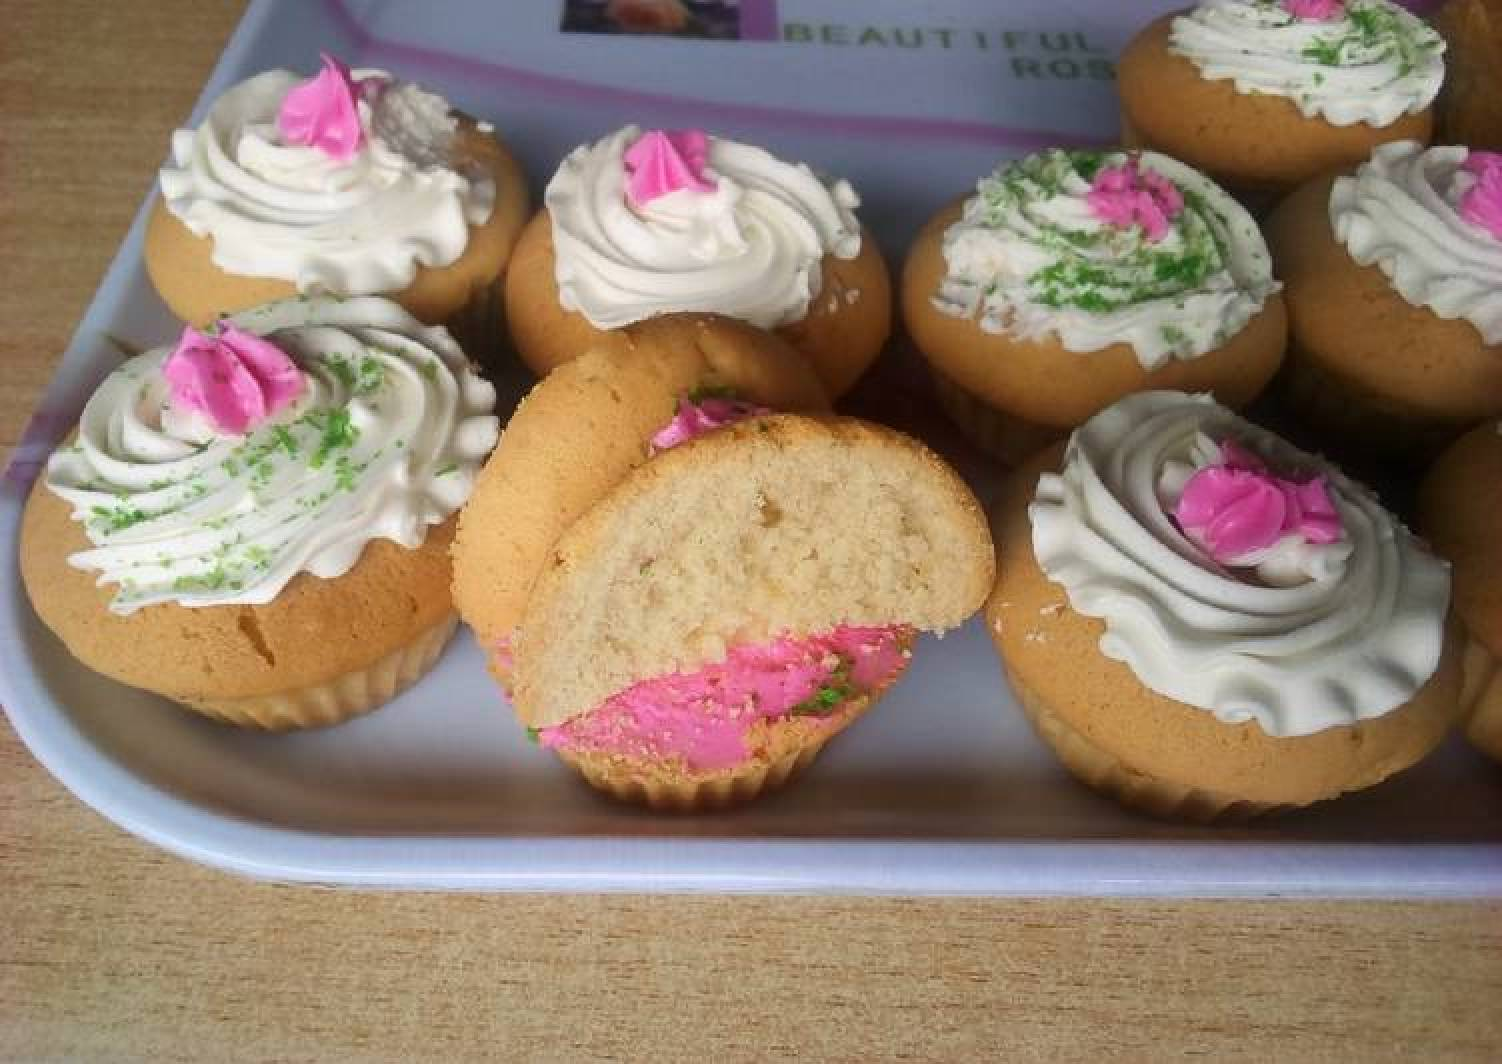 Vanilla cupcakes with cream frosting